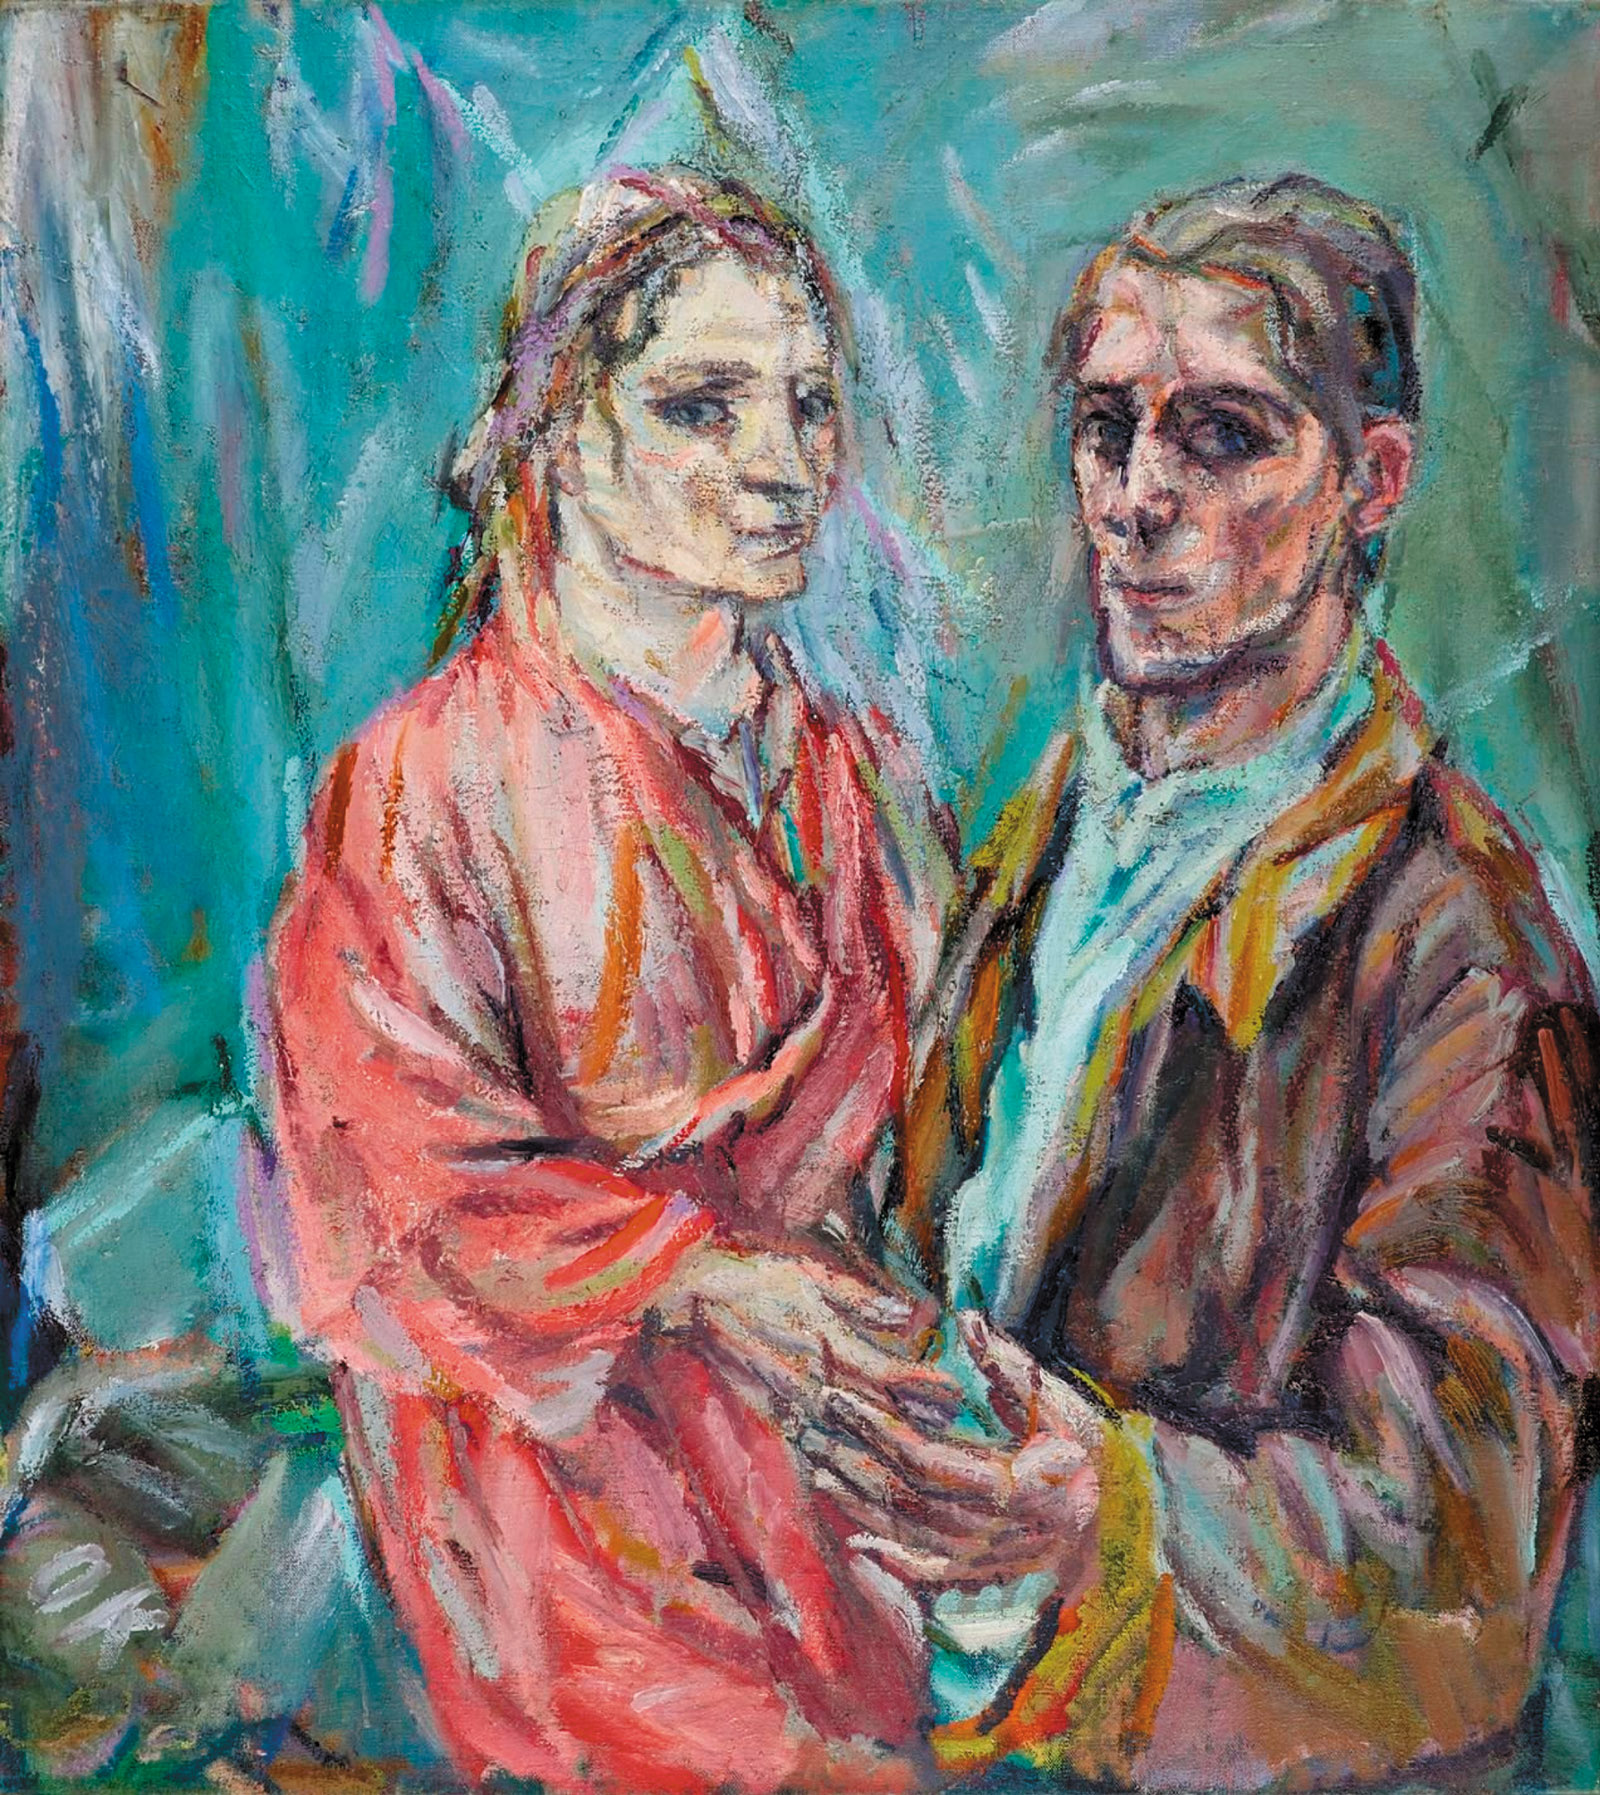 Double Portrait of Oskar Kokoschka and Alma Mahler; a painting by Oskar Kokoschka